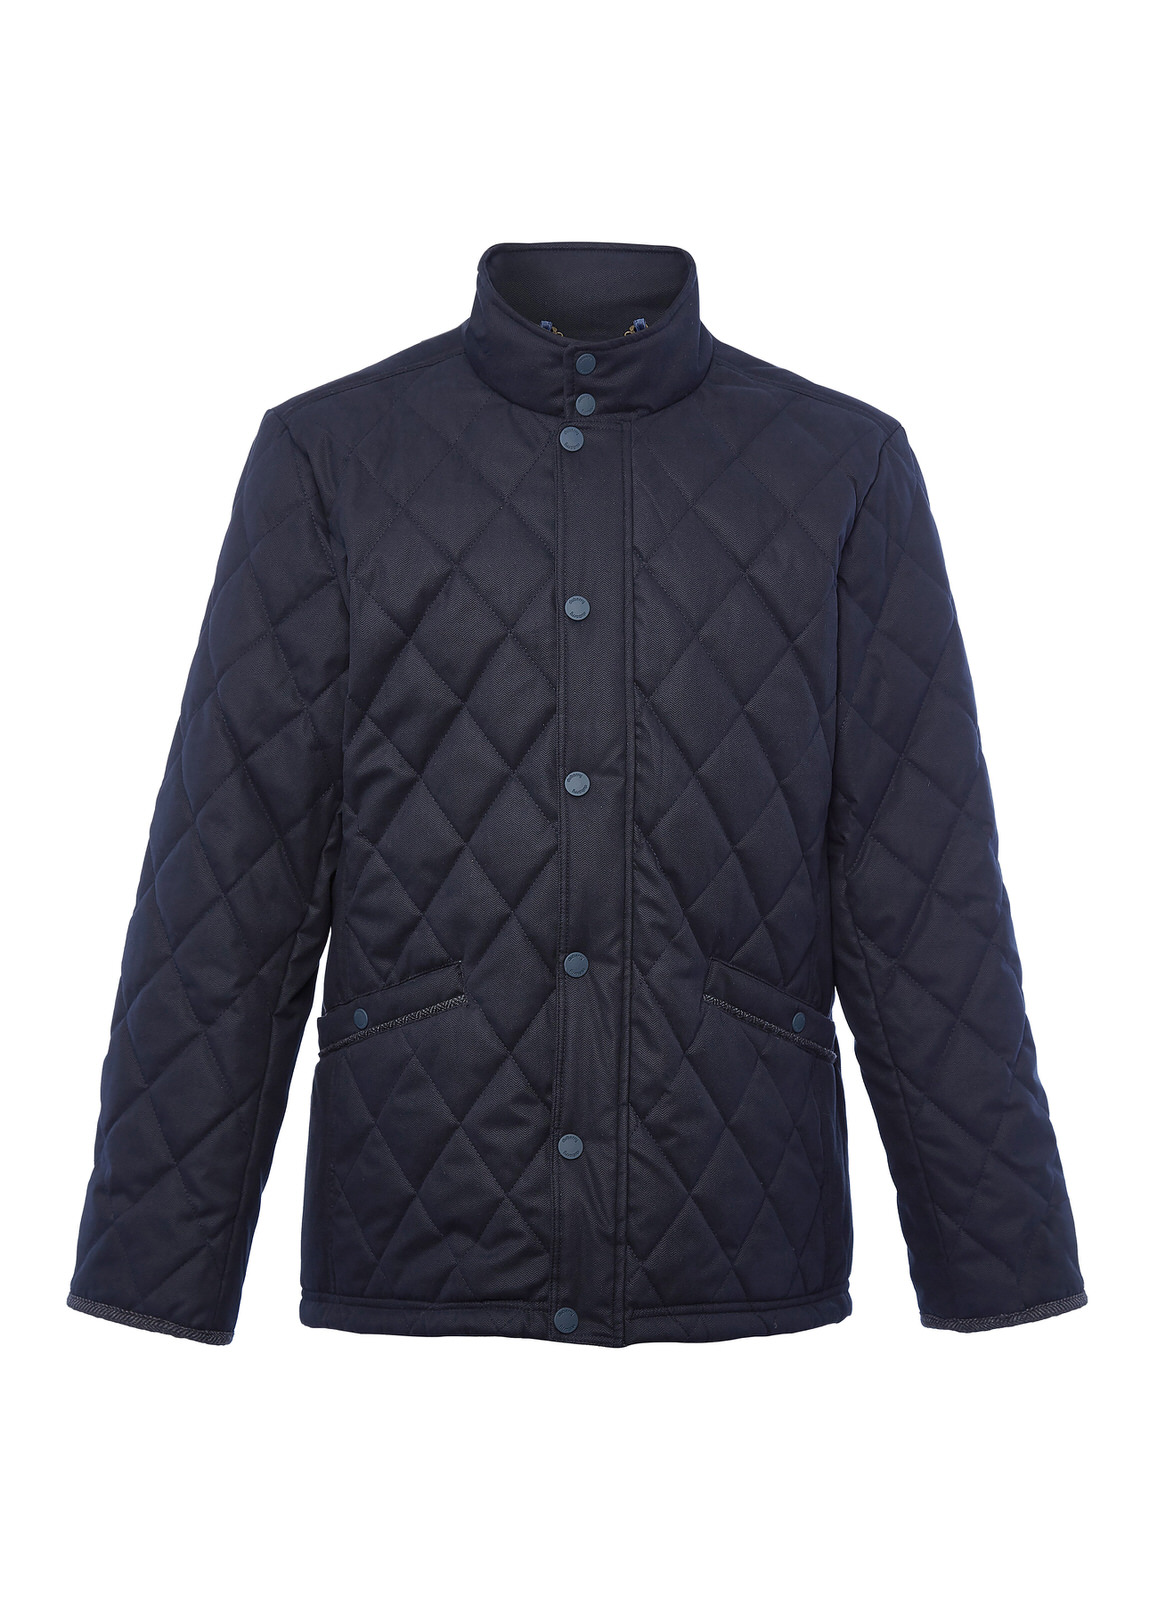 Bantry_Quilted_Jacket_Navy_Image_1